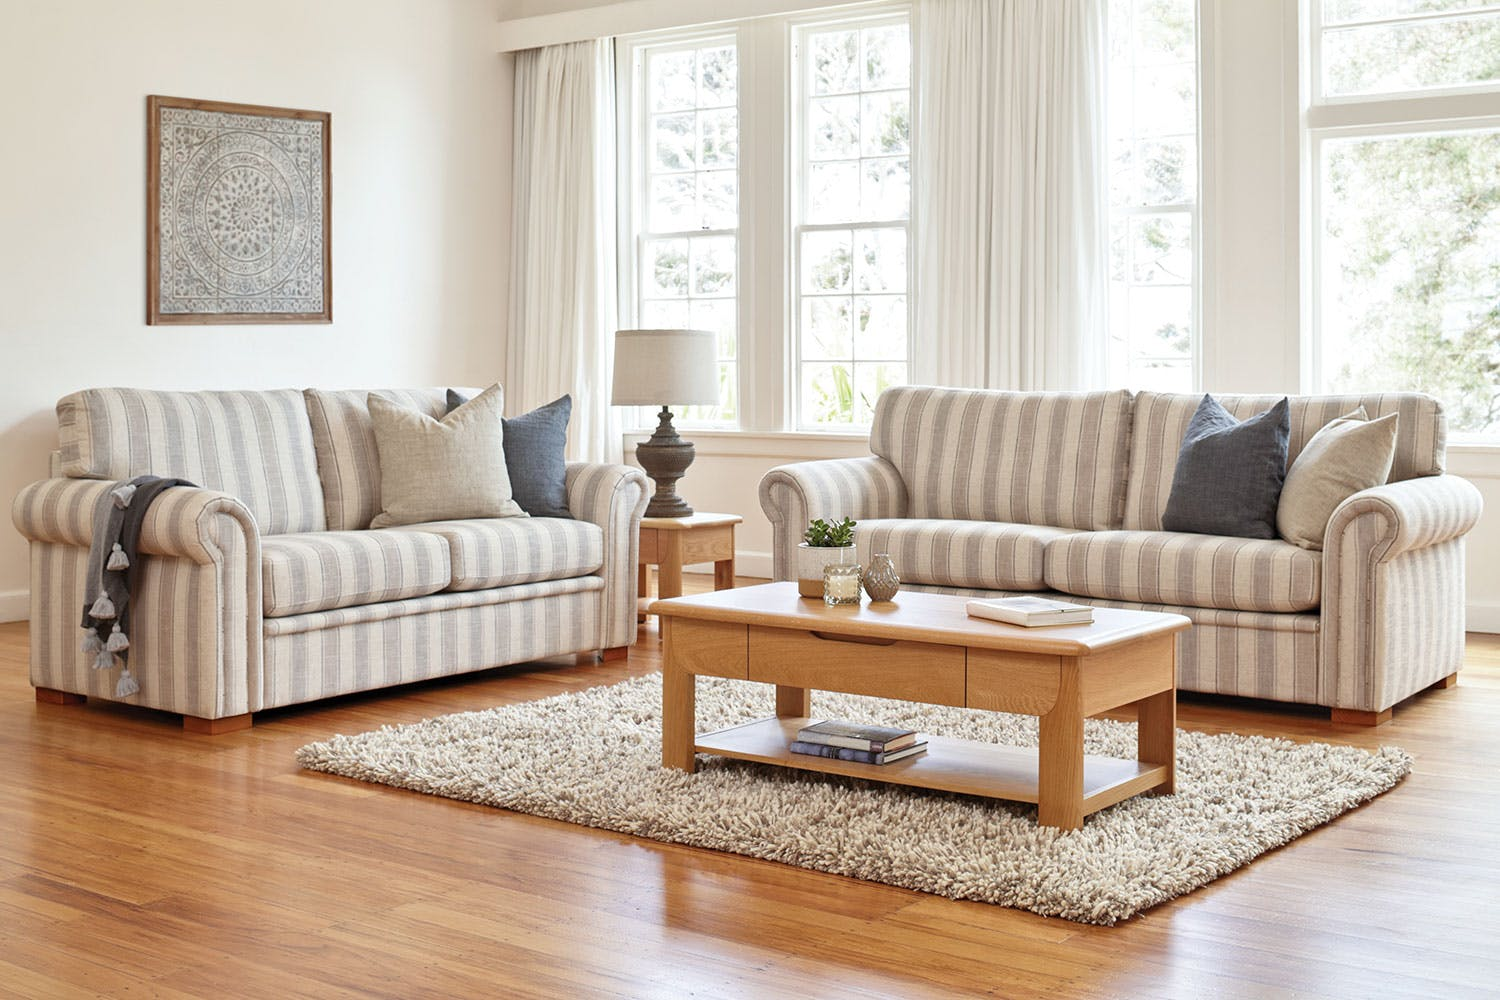 lounge suites couch ottoman sofa packages harvey norman new